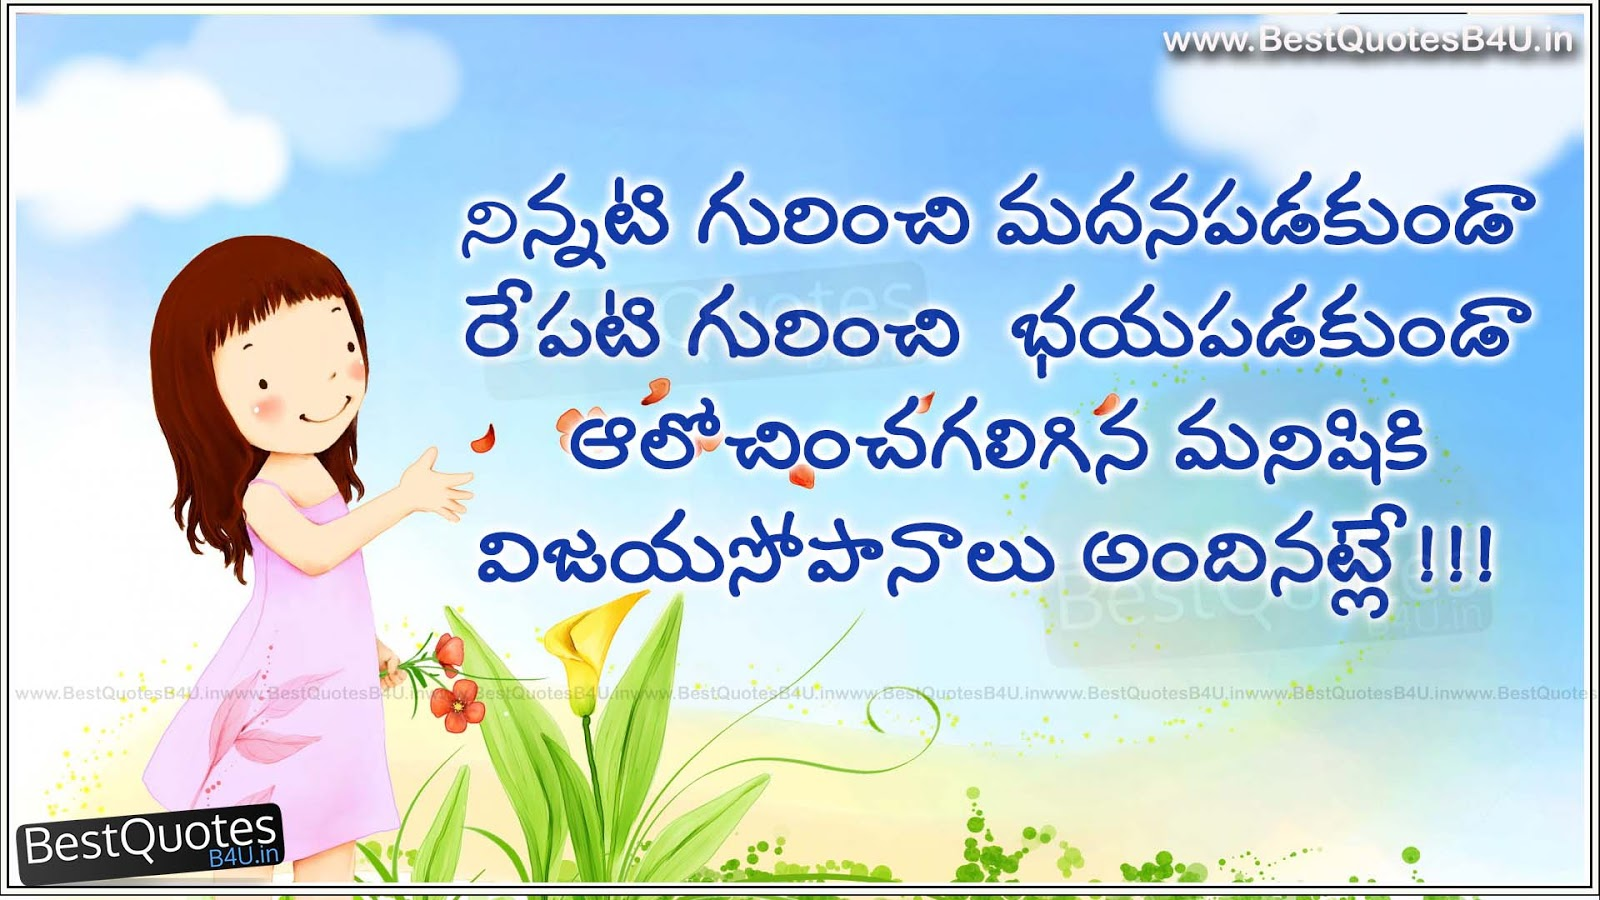 Inspirational Messages Best Telugu Victory Quotes Inspirational Messages  Good Morning